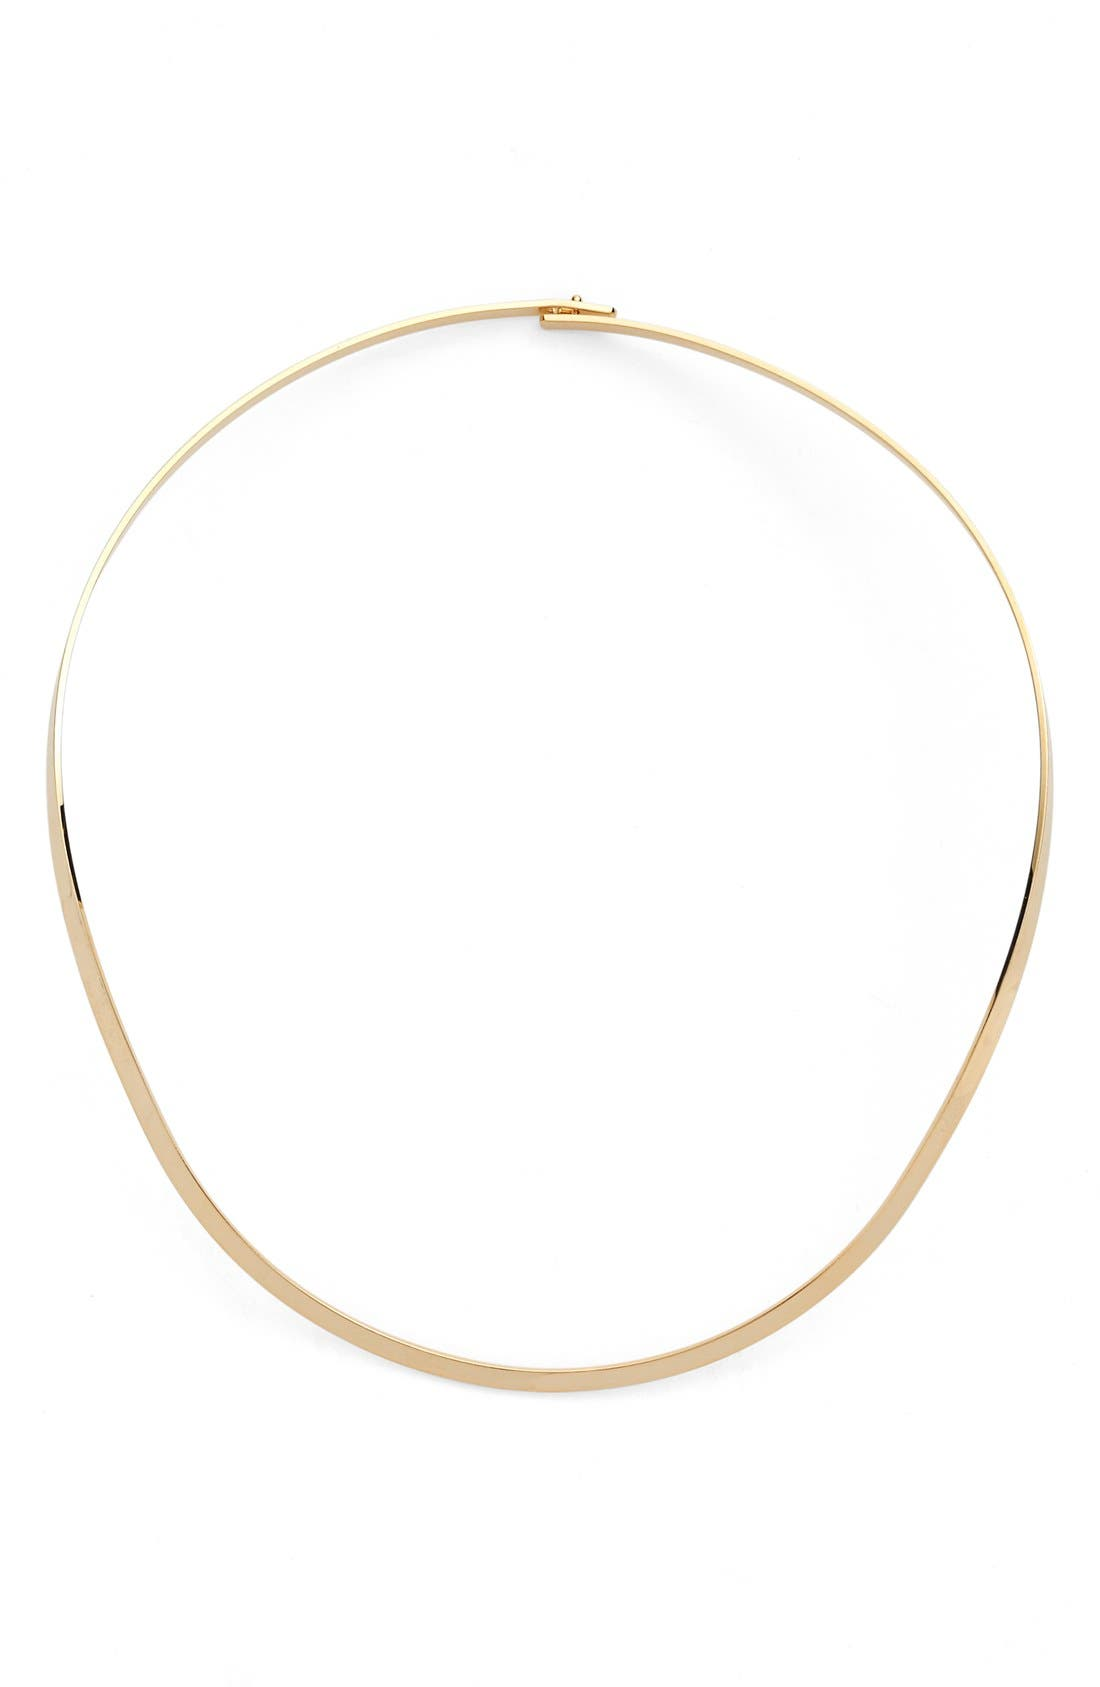 Alternate Image 1 Selected - Nordstrom Collar Necklace